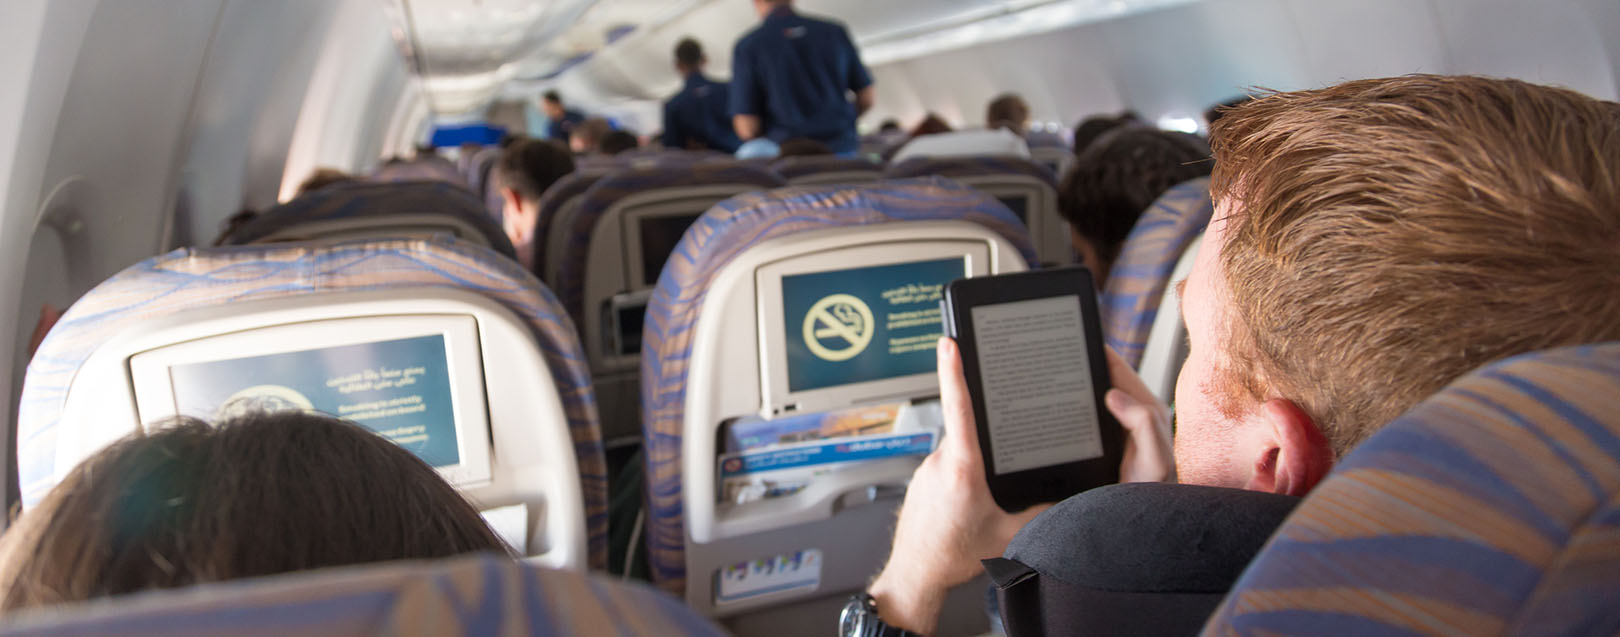 UK joins US airline electronics ban